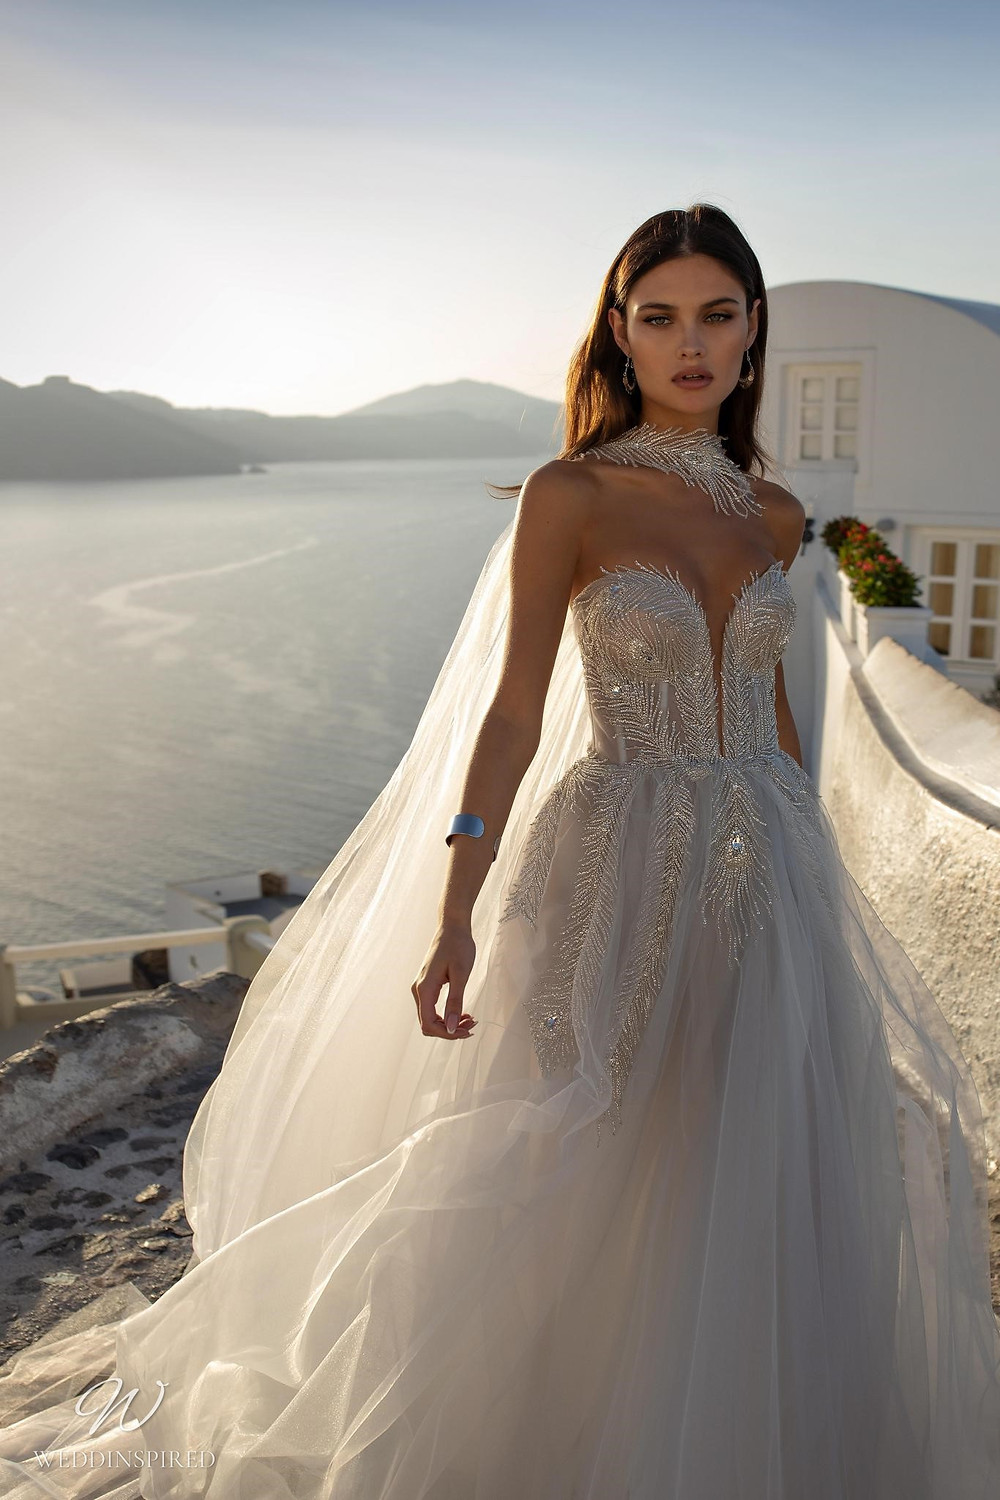 A Ricca Sposa sparkly strapless tulle ball gown wedding dress with feathers and crystals